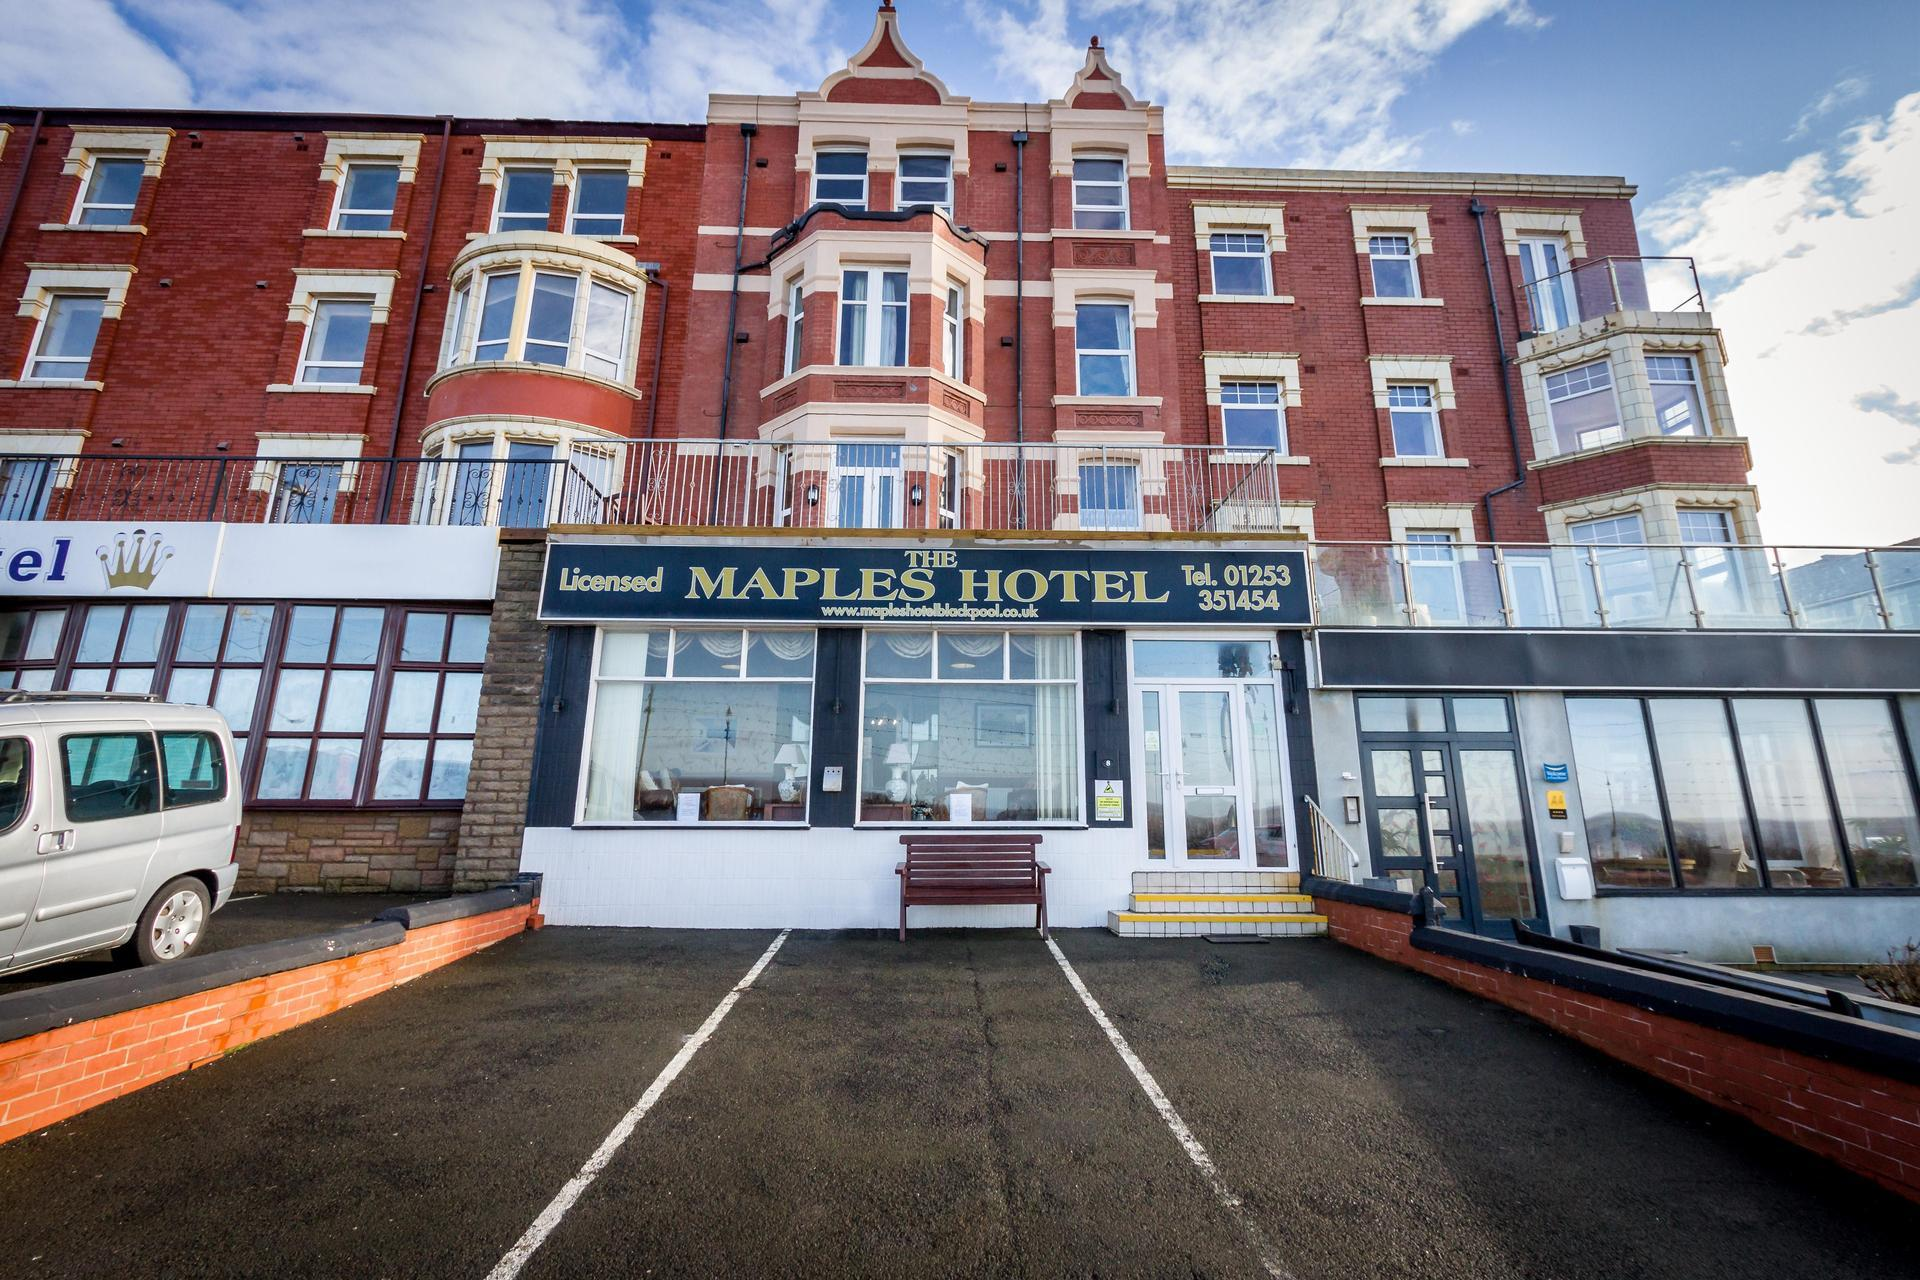 The Maples Hotel in Blackpool